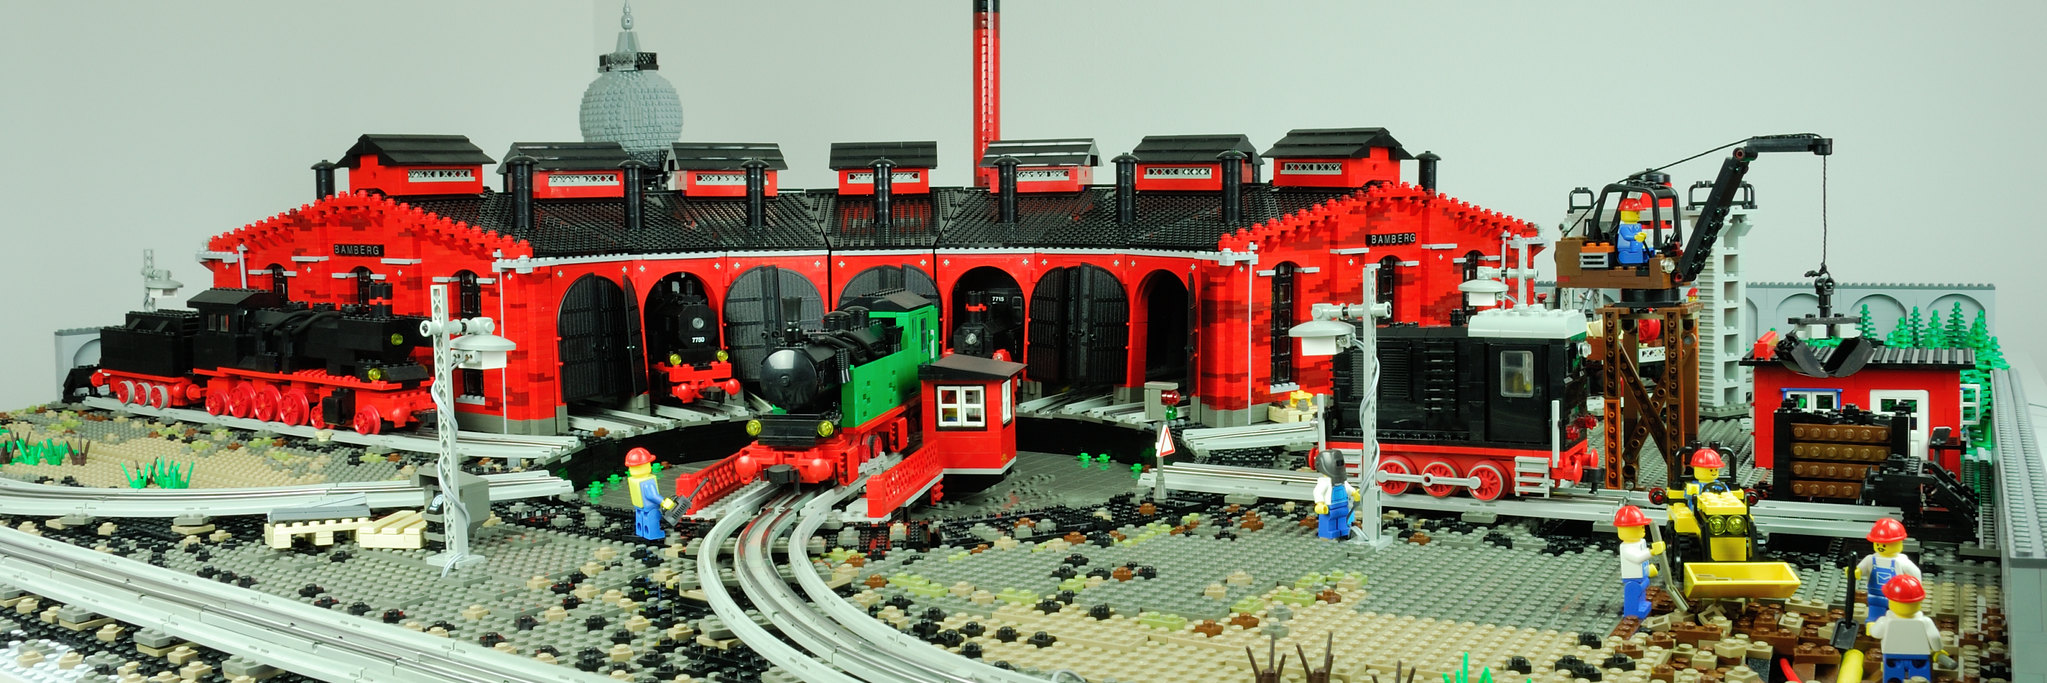 LEGO 12 V Roundhouse – front panorama view